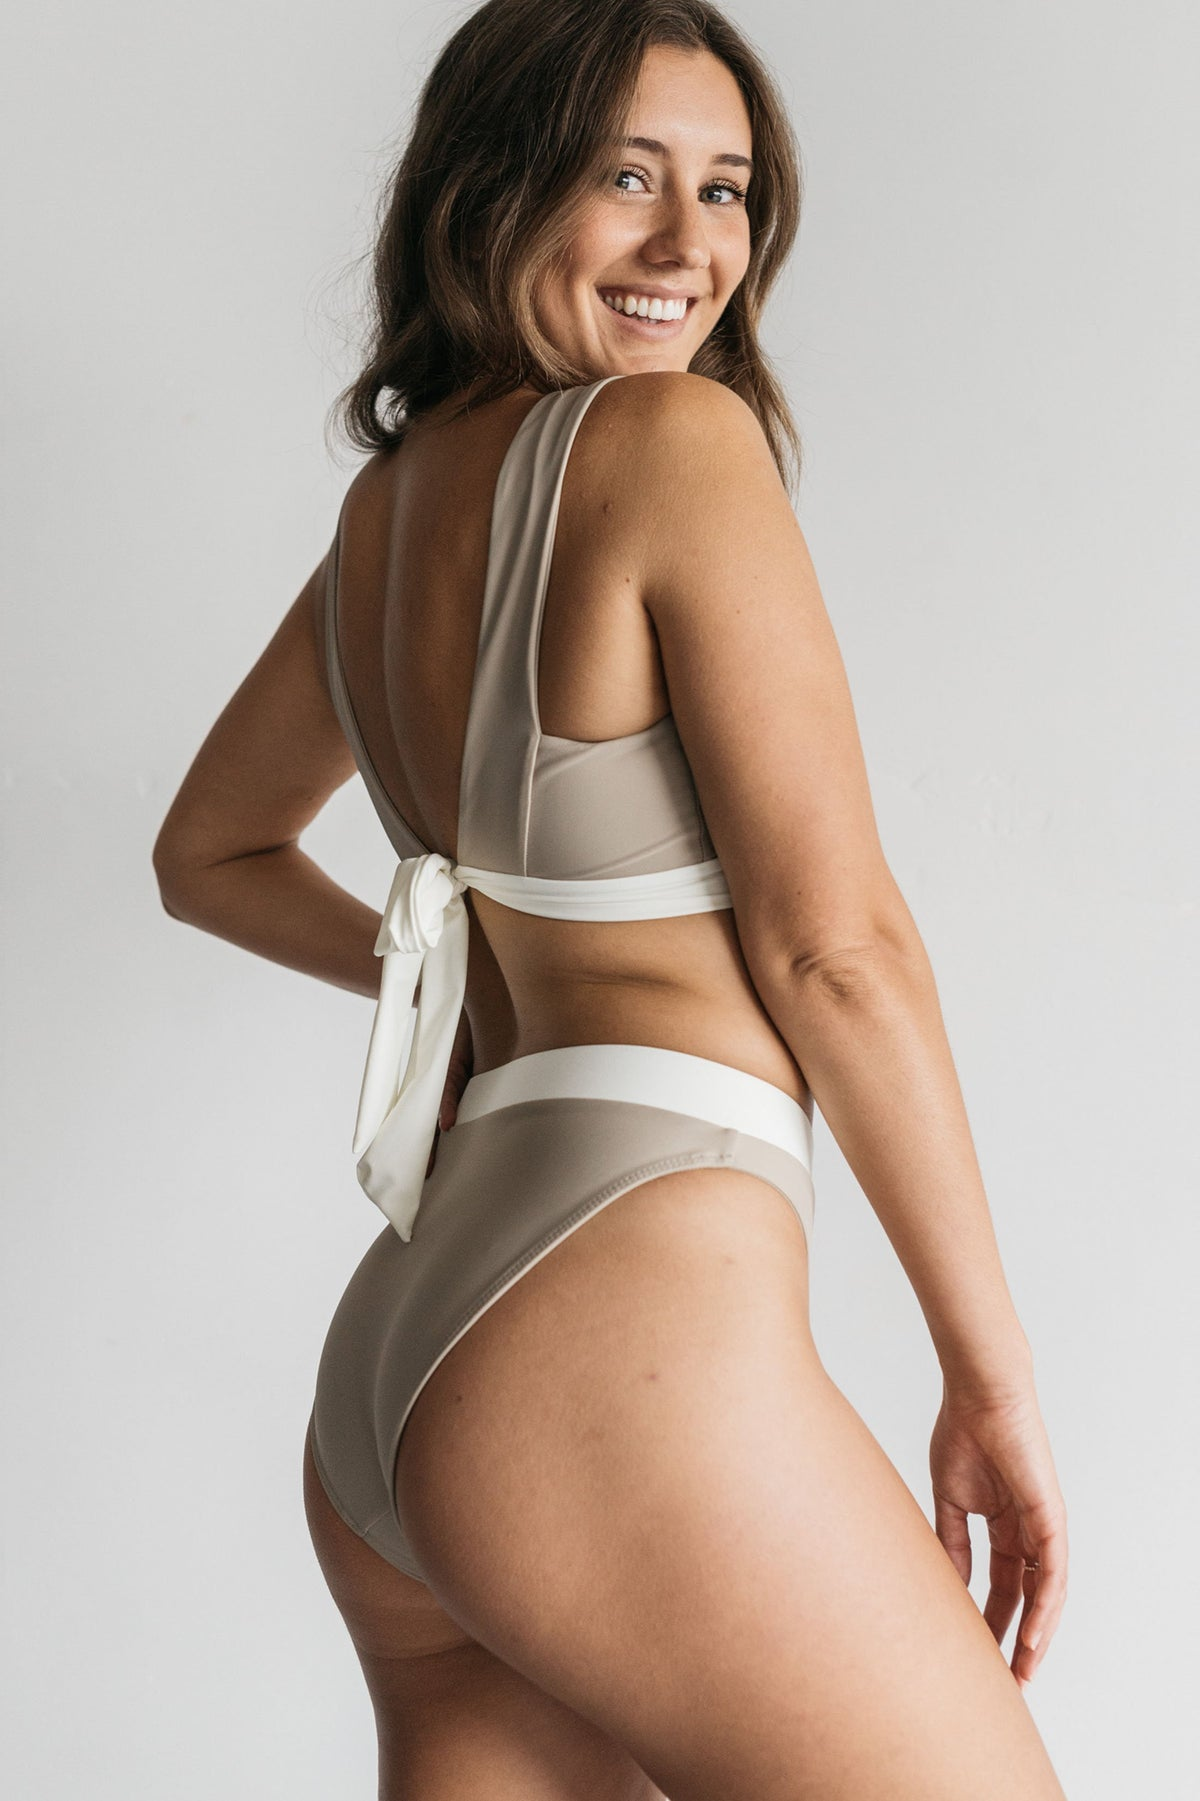 A woman standing in front of a white wall smiling over her shoulder wearing nude high waisted bikini bottoms with a white waistband and a matching nude bikini top with a white adjustable tie.